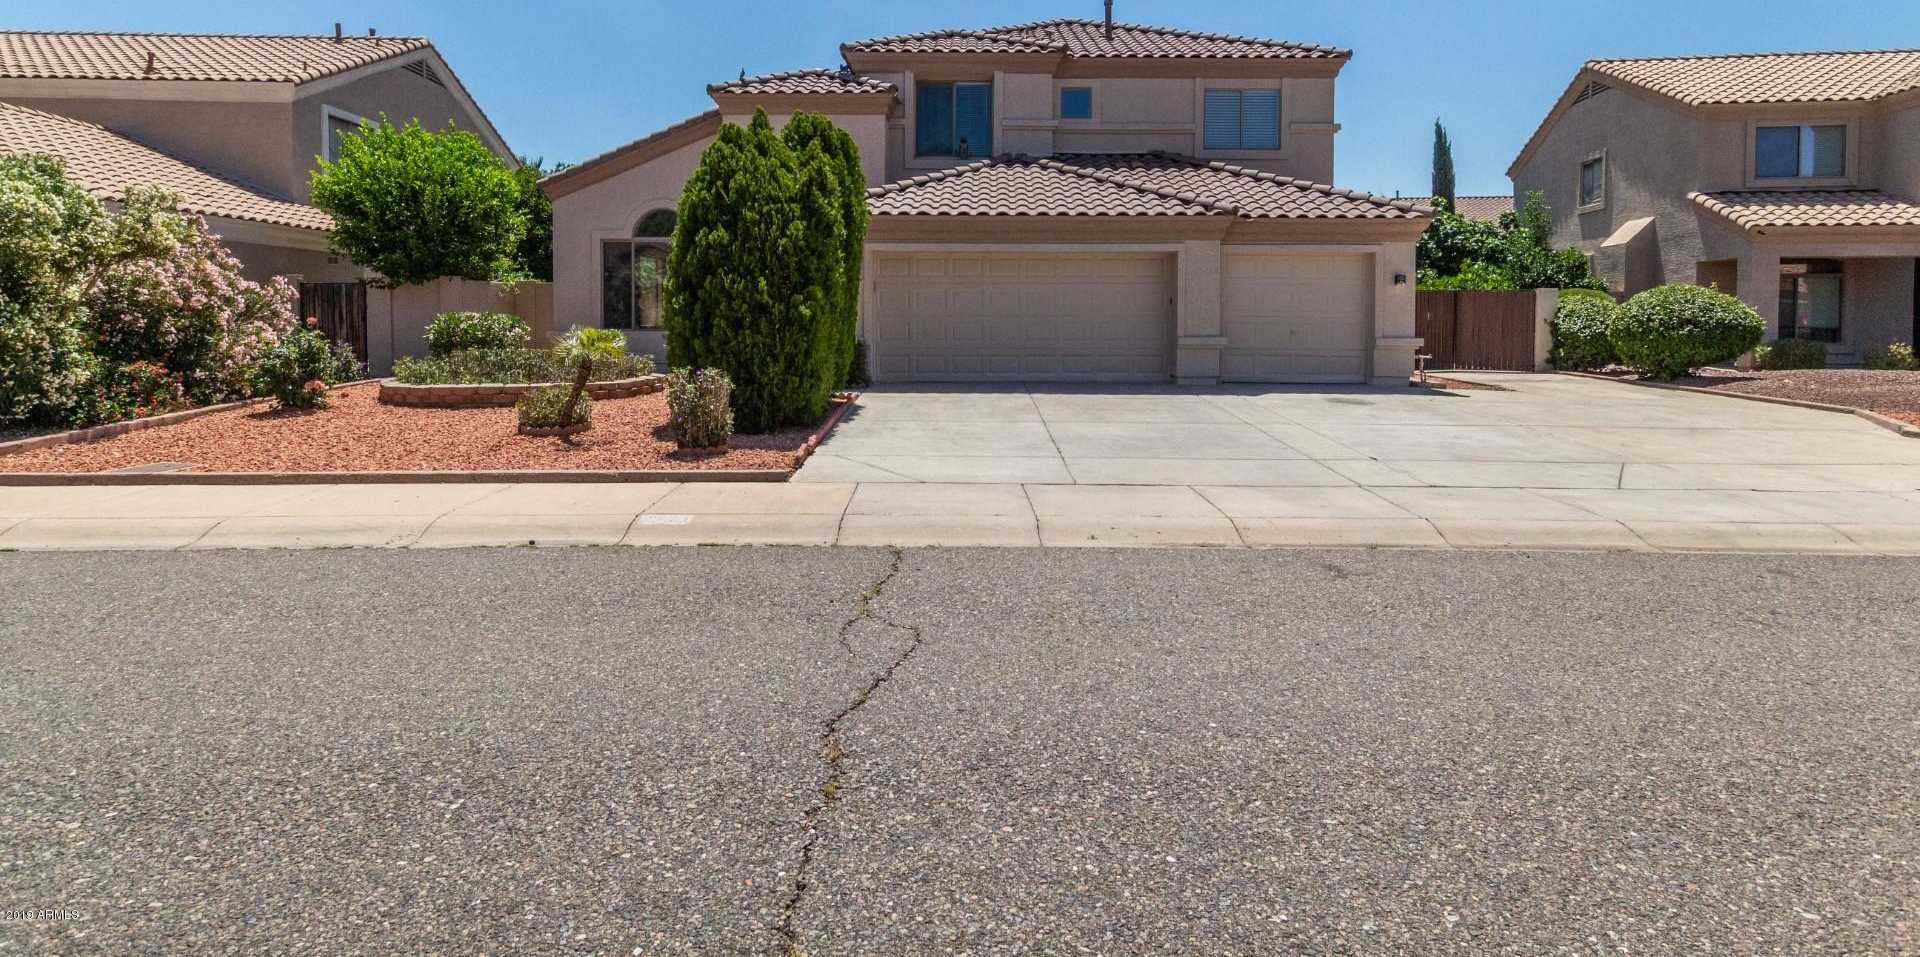 $364,900 - 4Br/3Ba - Home for Sale in Touchstone, Glendale